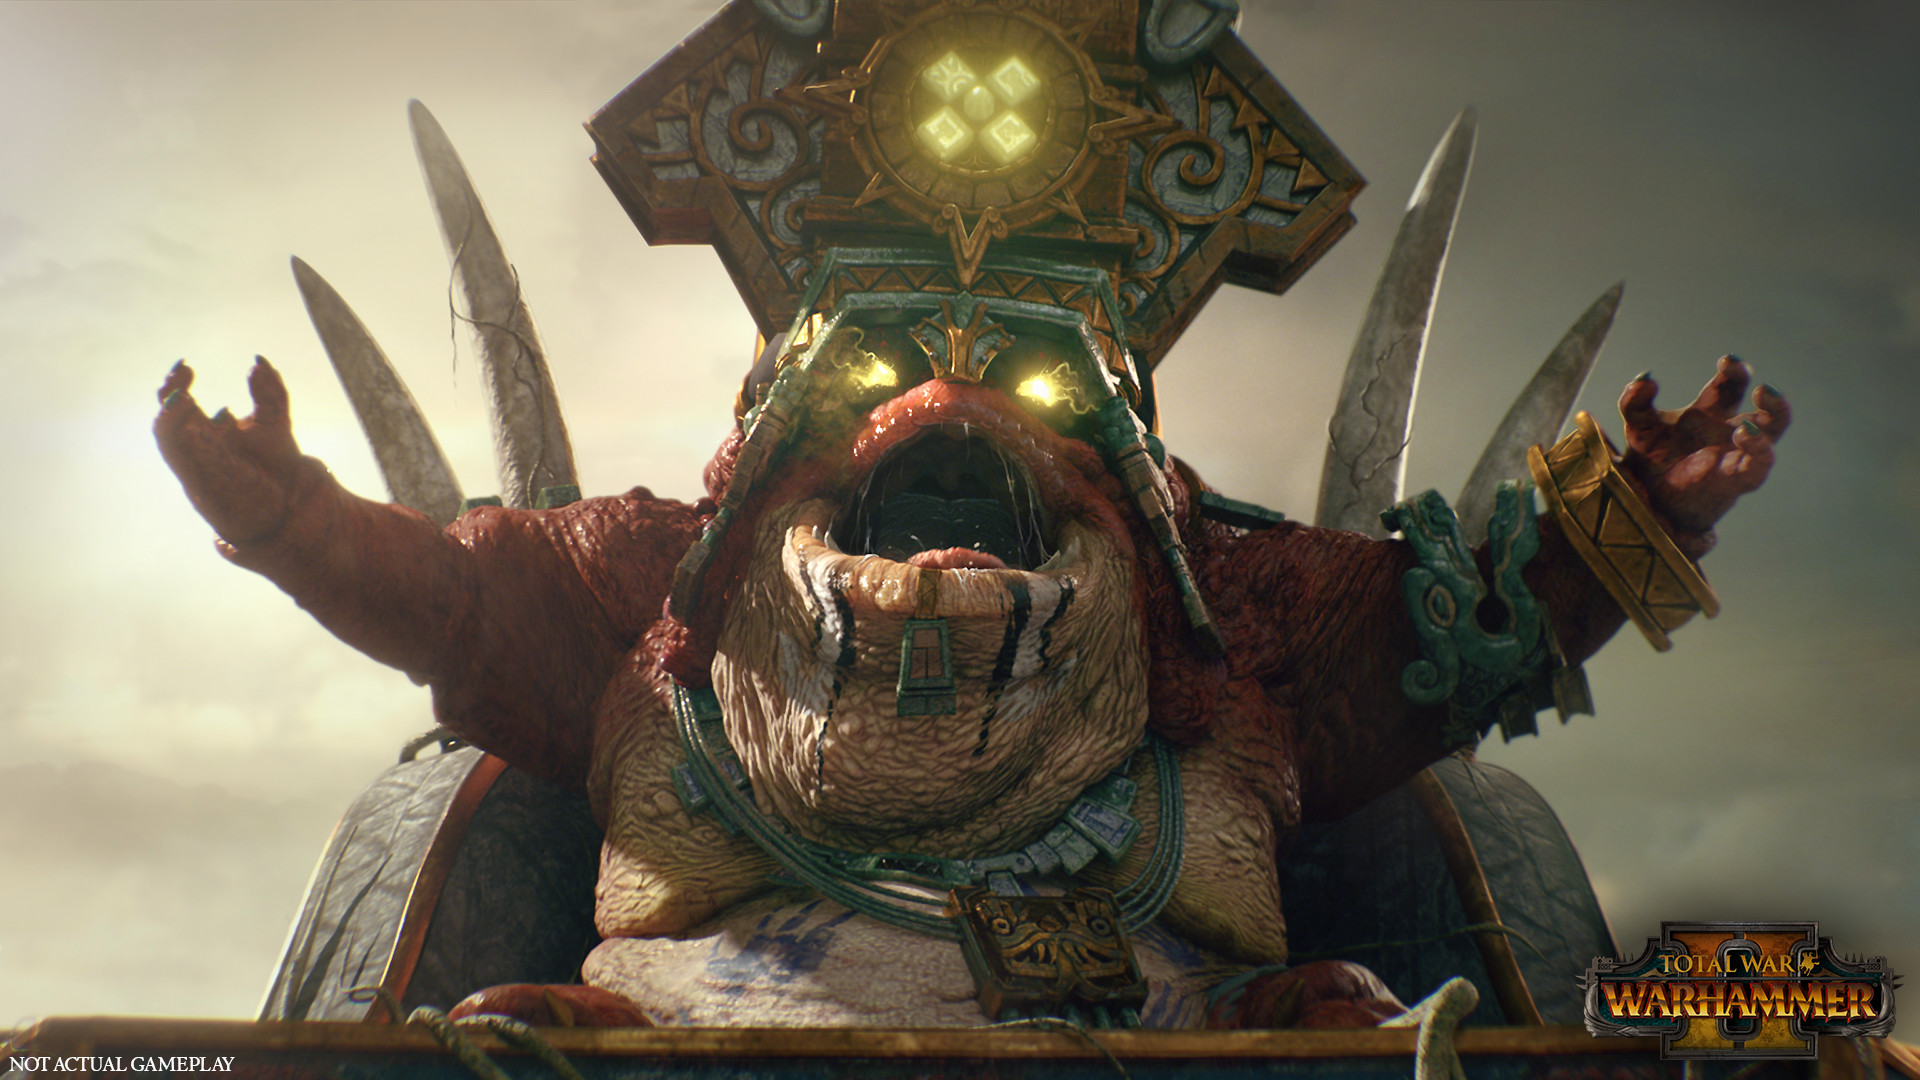 [Watch] Total War: Warhammer 2 gets an epic cinematic announcement trailer